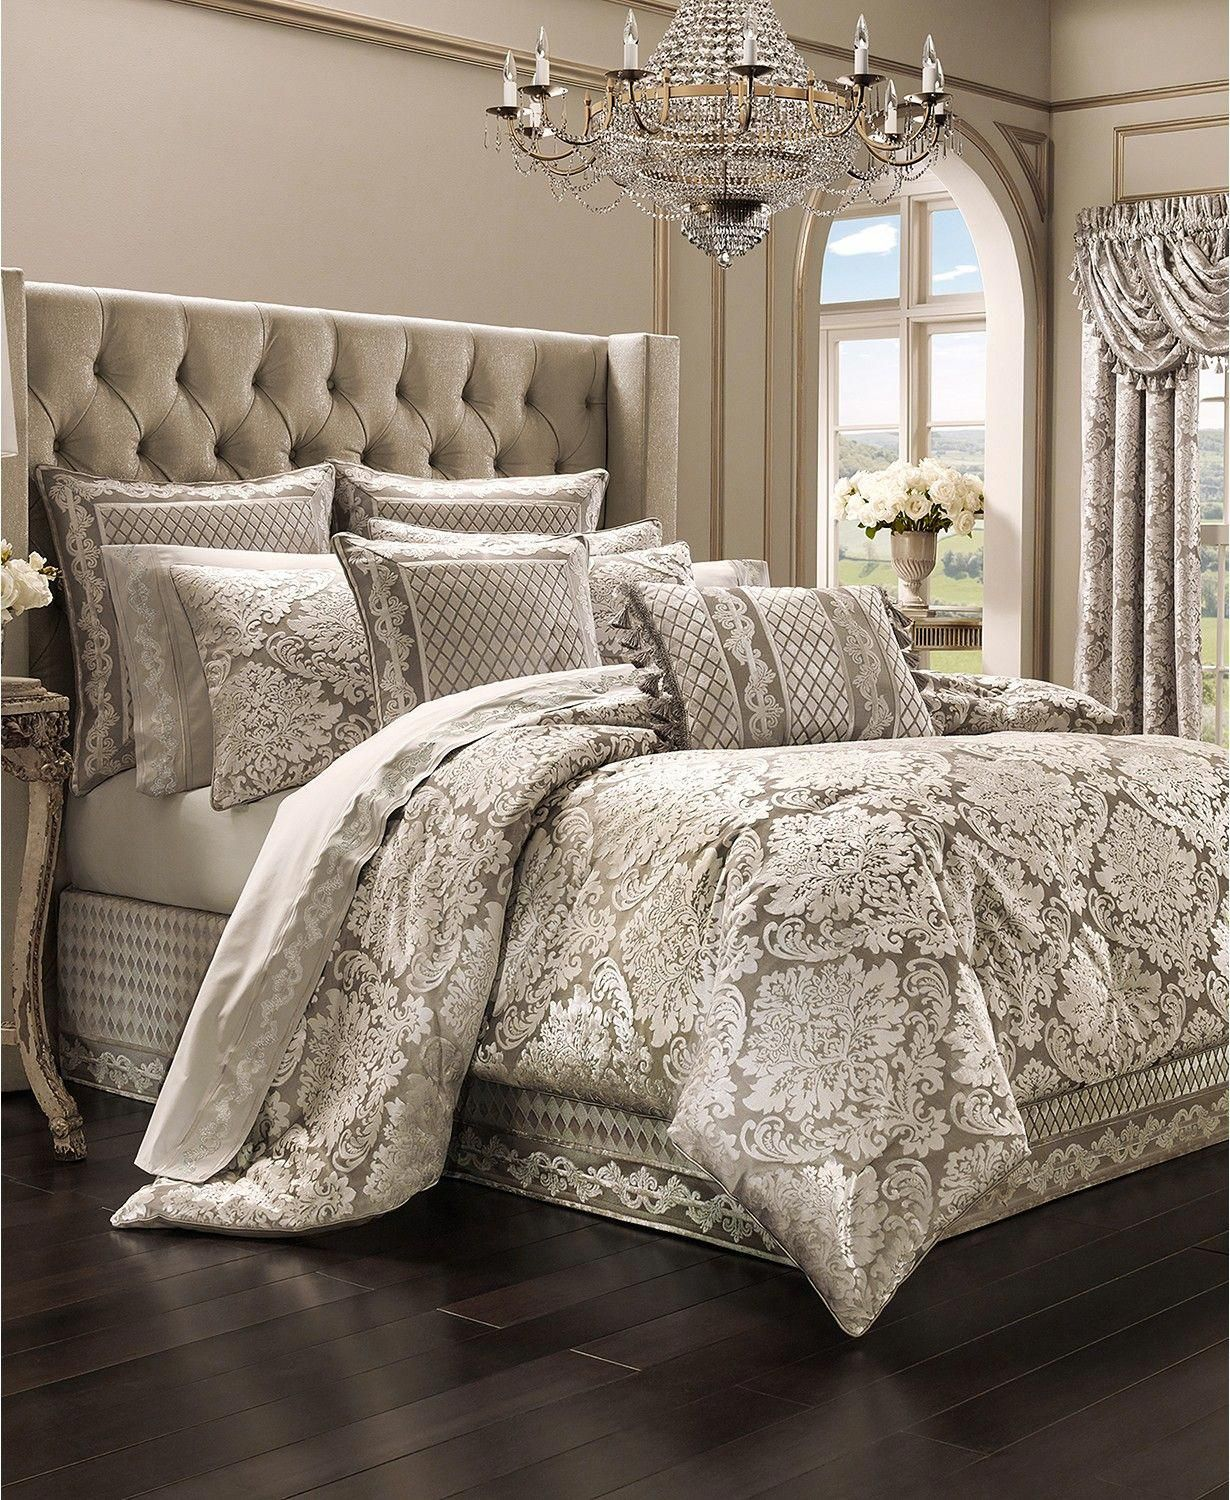 Luxury Bed Linens For Less Coolbeddingsets In 2020 Luxurious Bedrooms Bedding Master Bedroom Comforter Sets